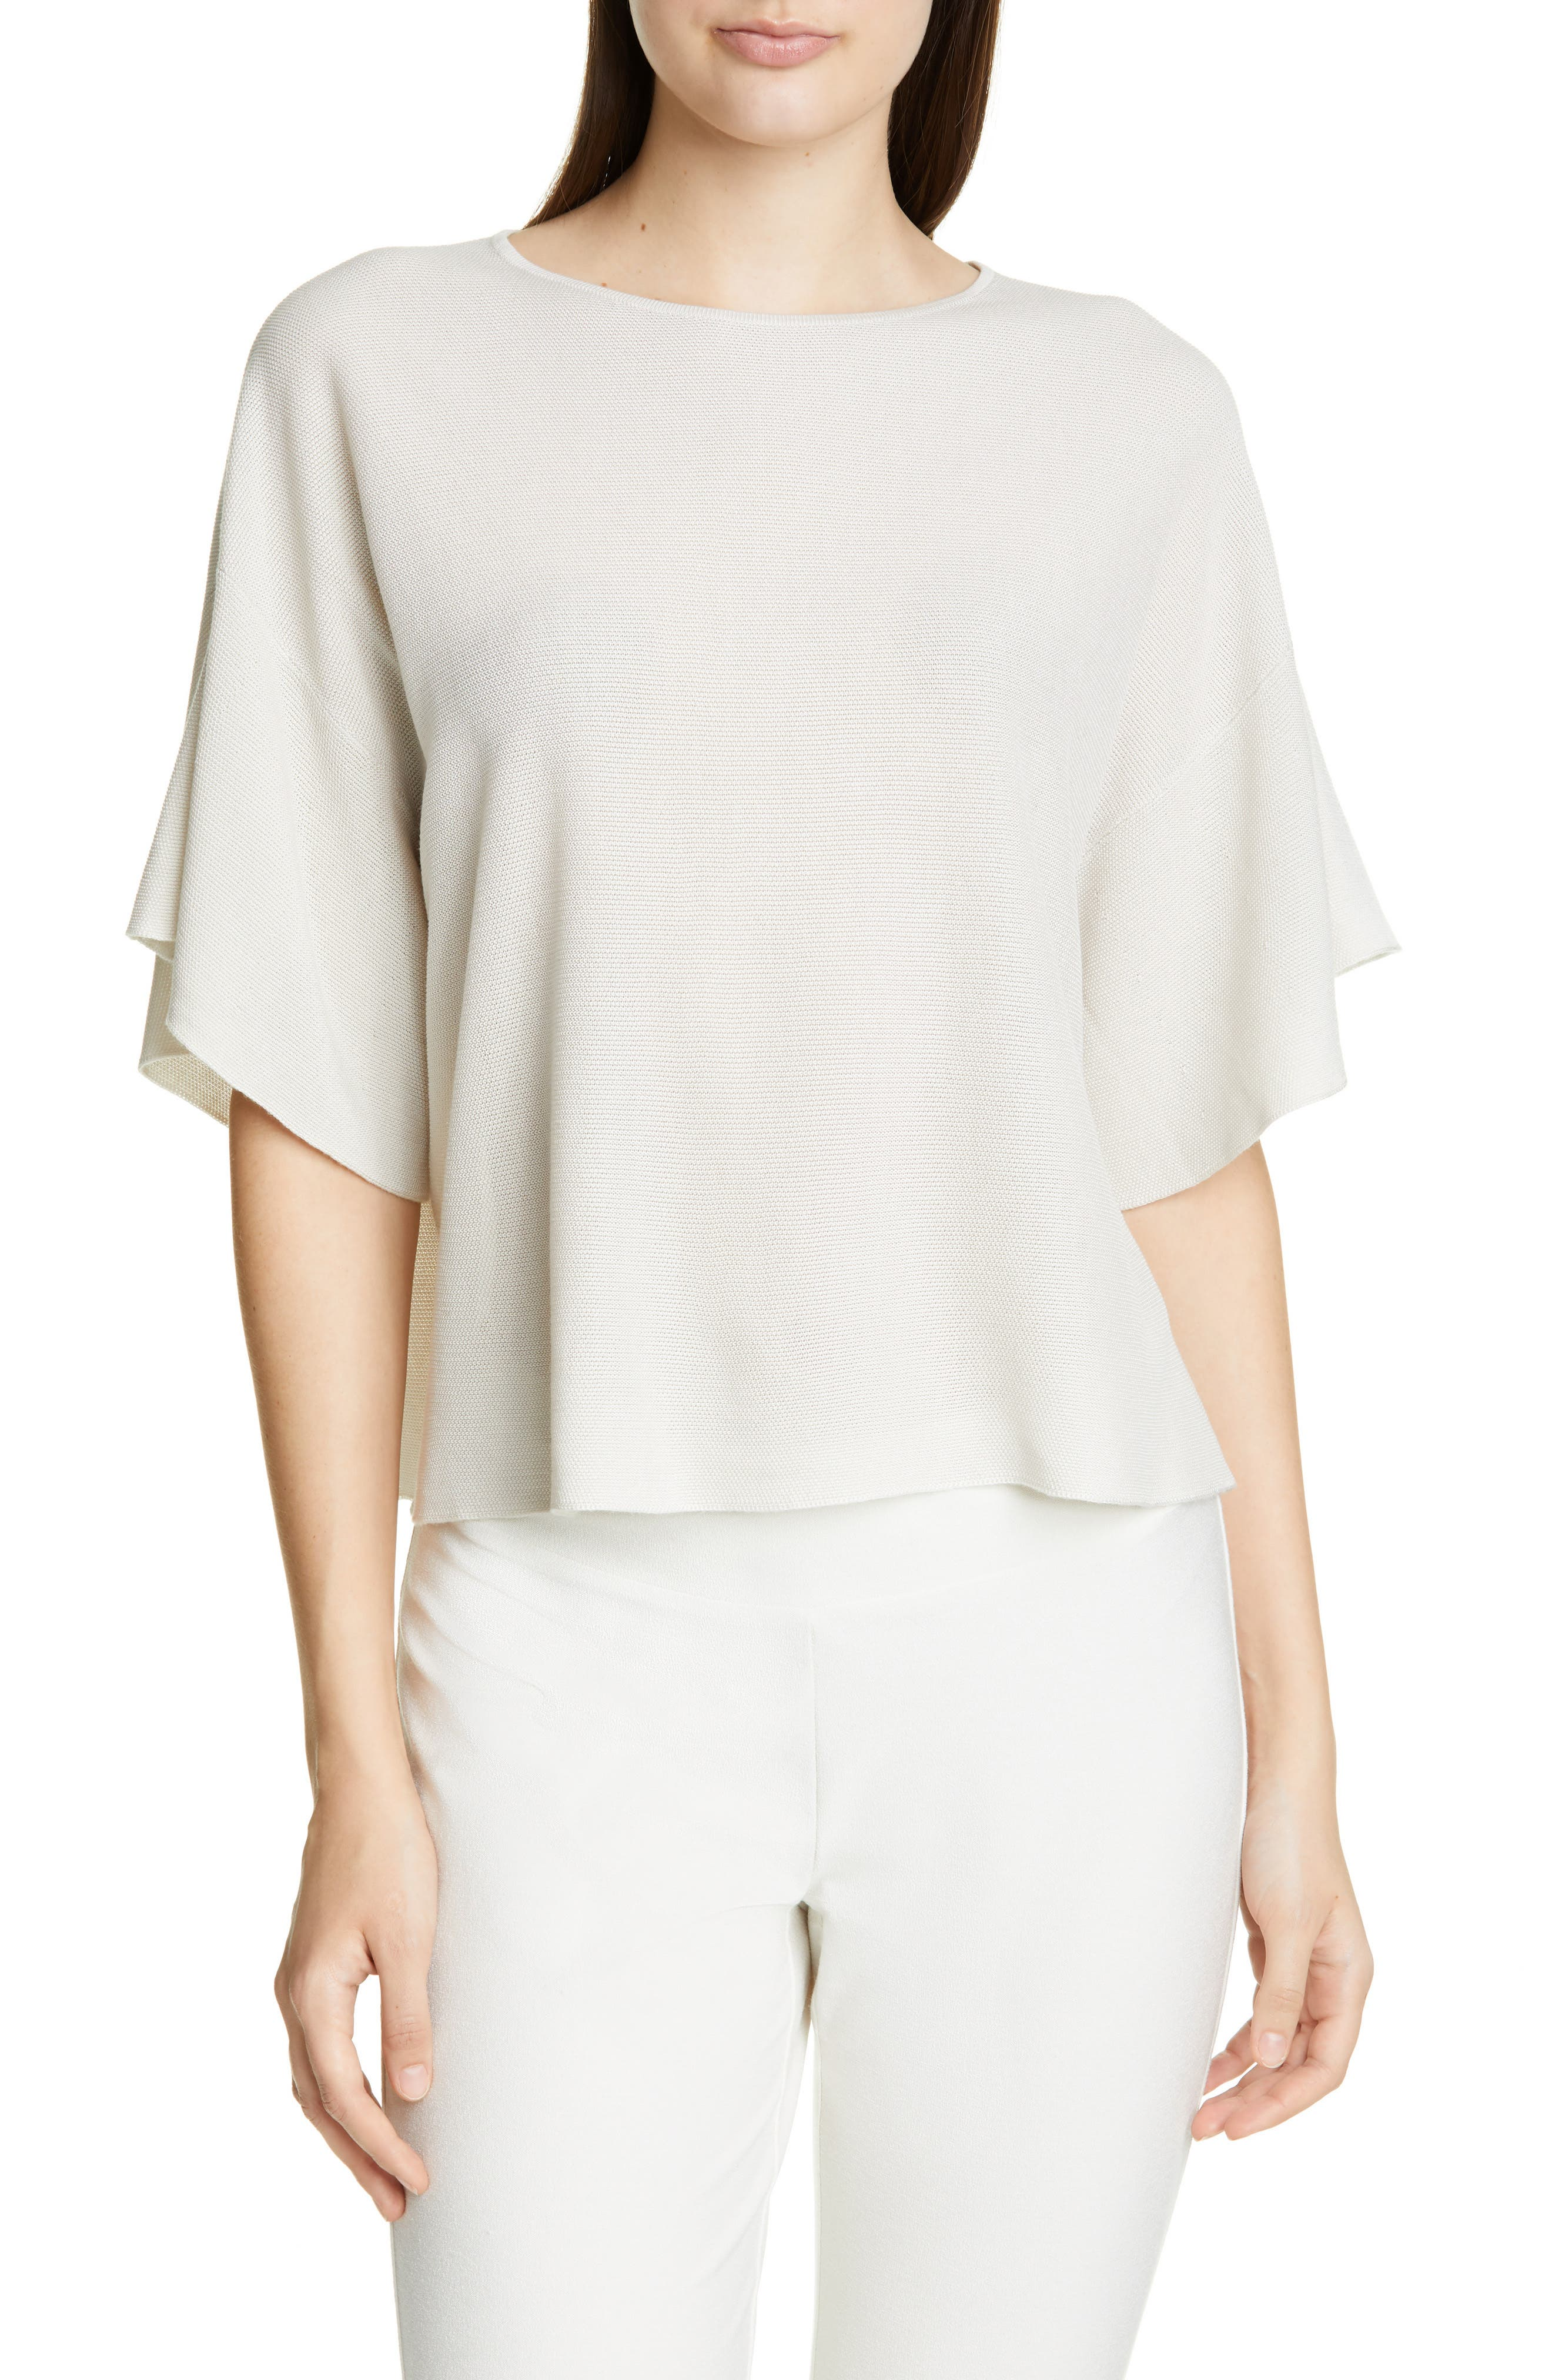 EILEEN FISHER Elbow Sleeve Top, Main, color, 100